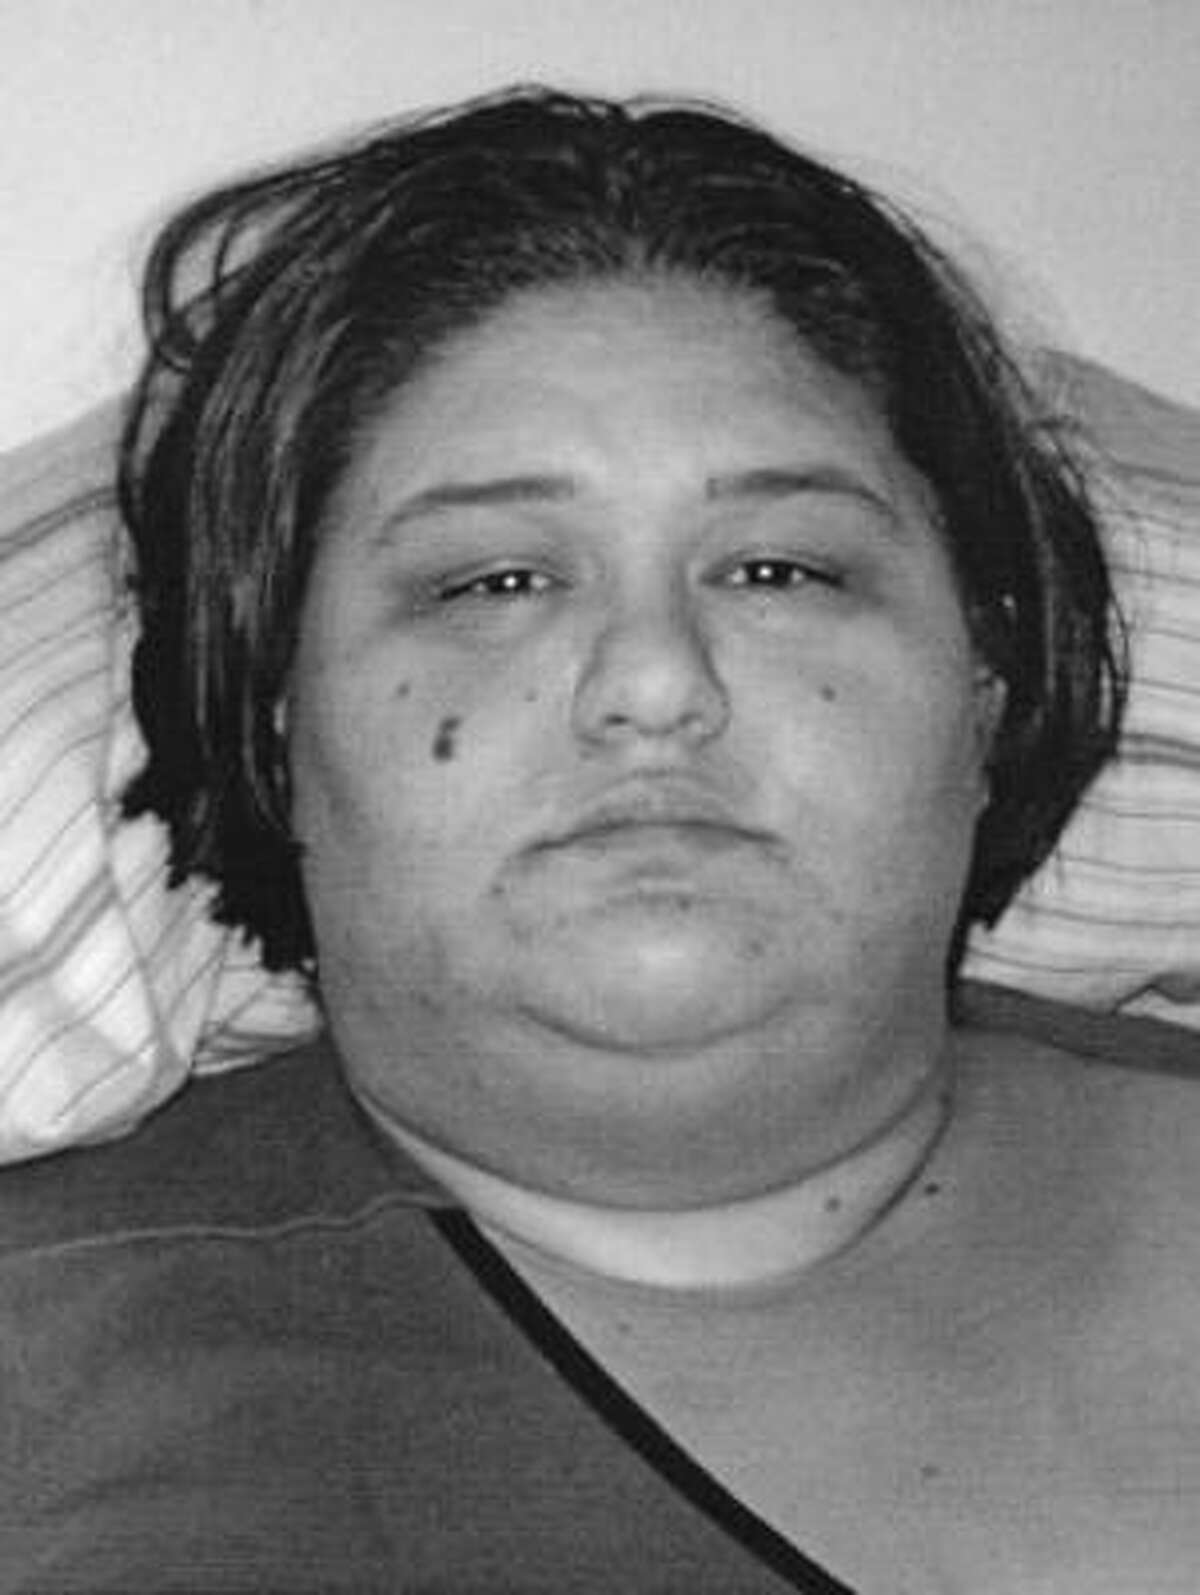 Authorities say Mayra Lizbeth Rosales killed her nephew with two blows to the head.